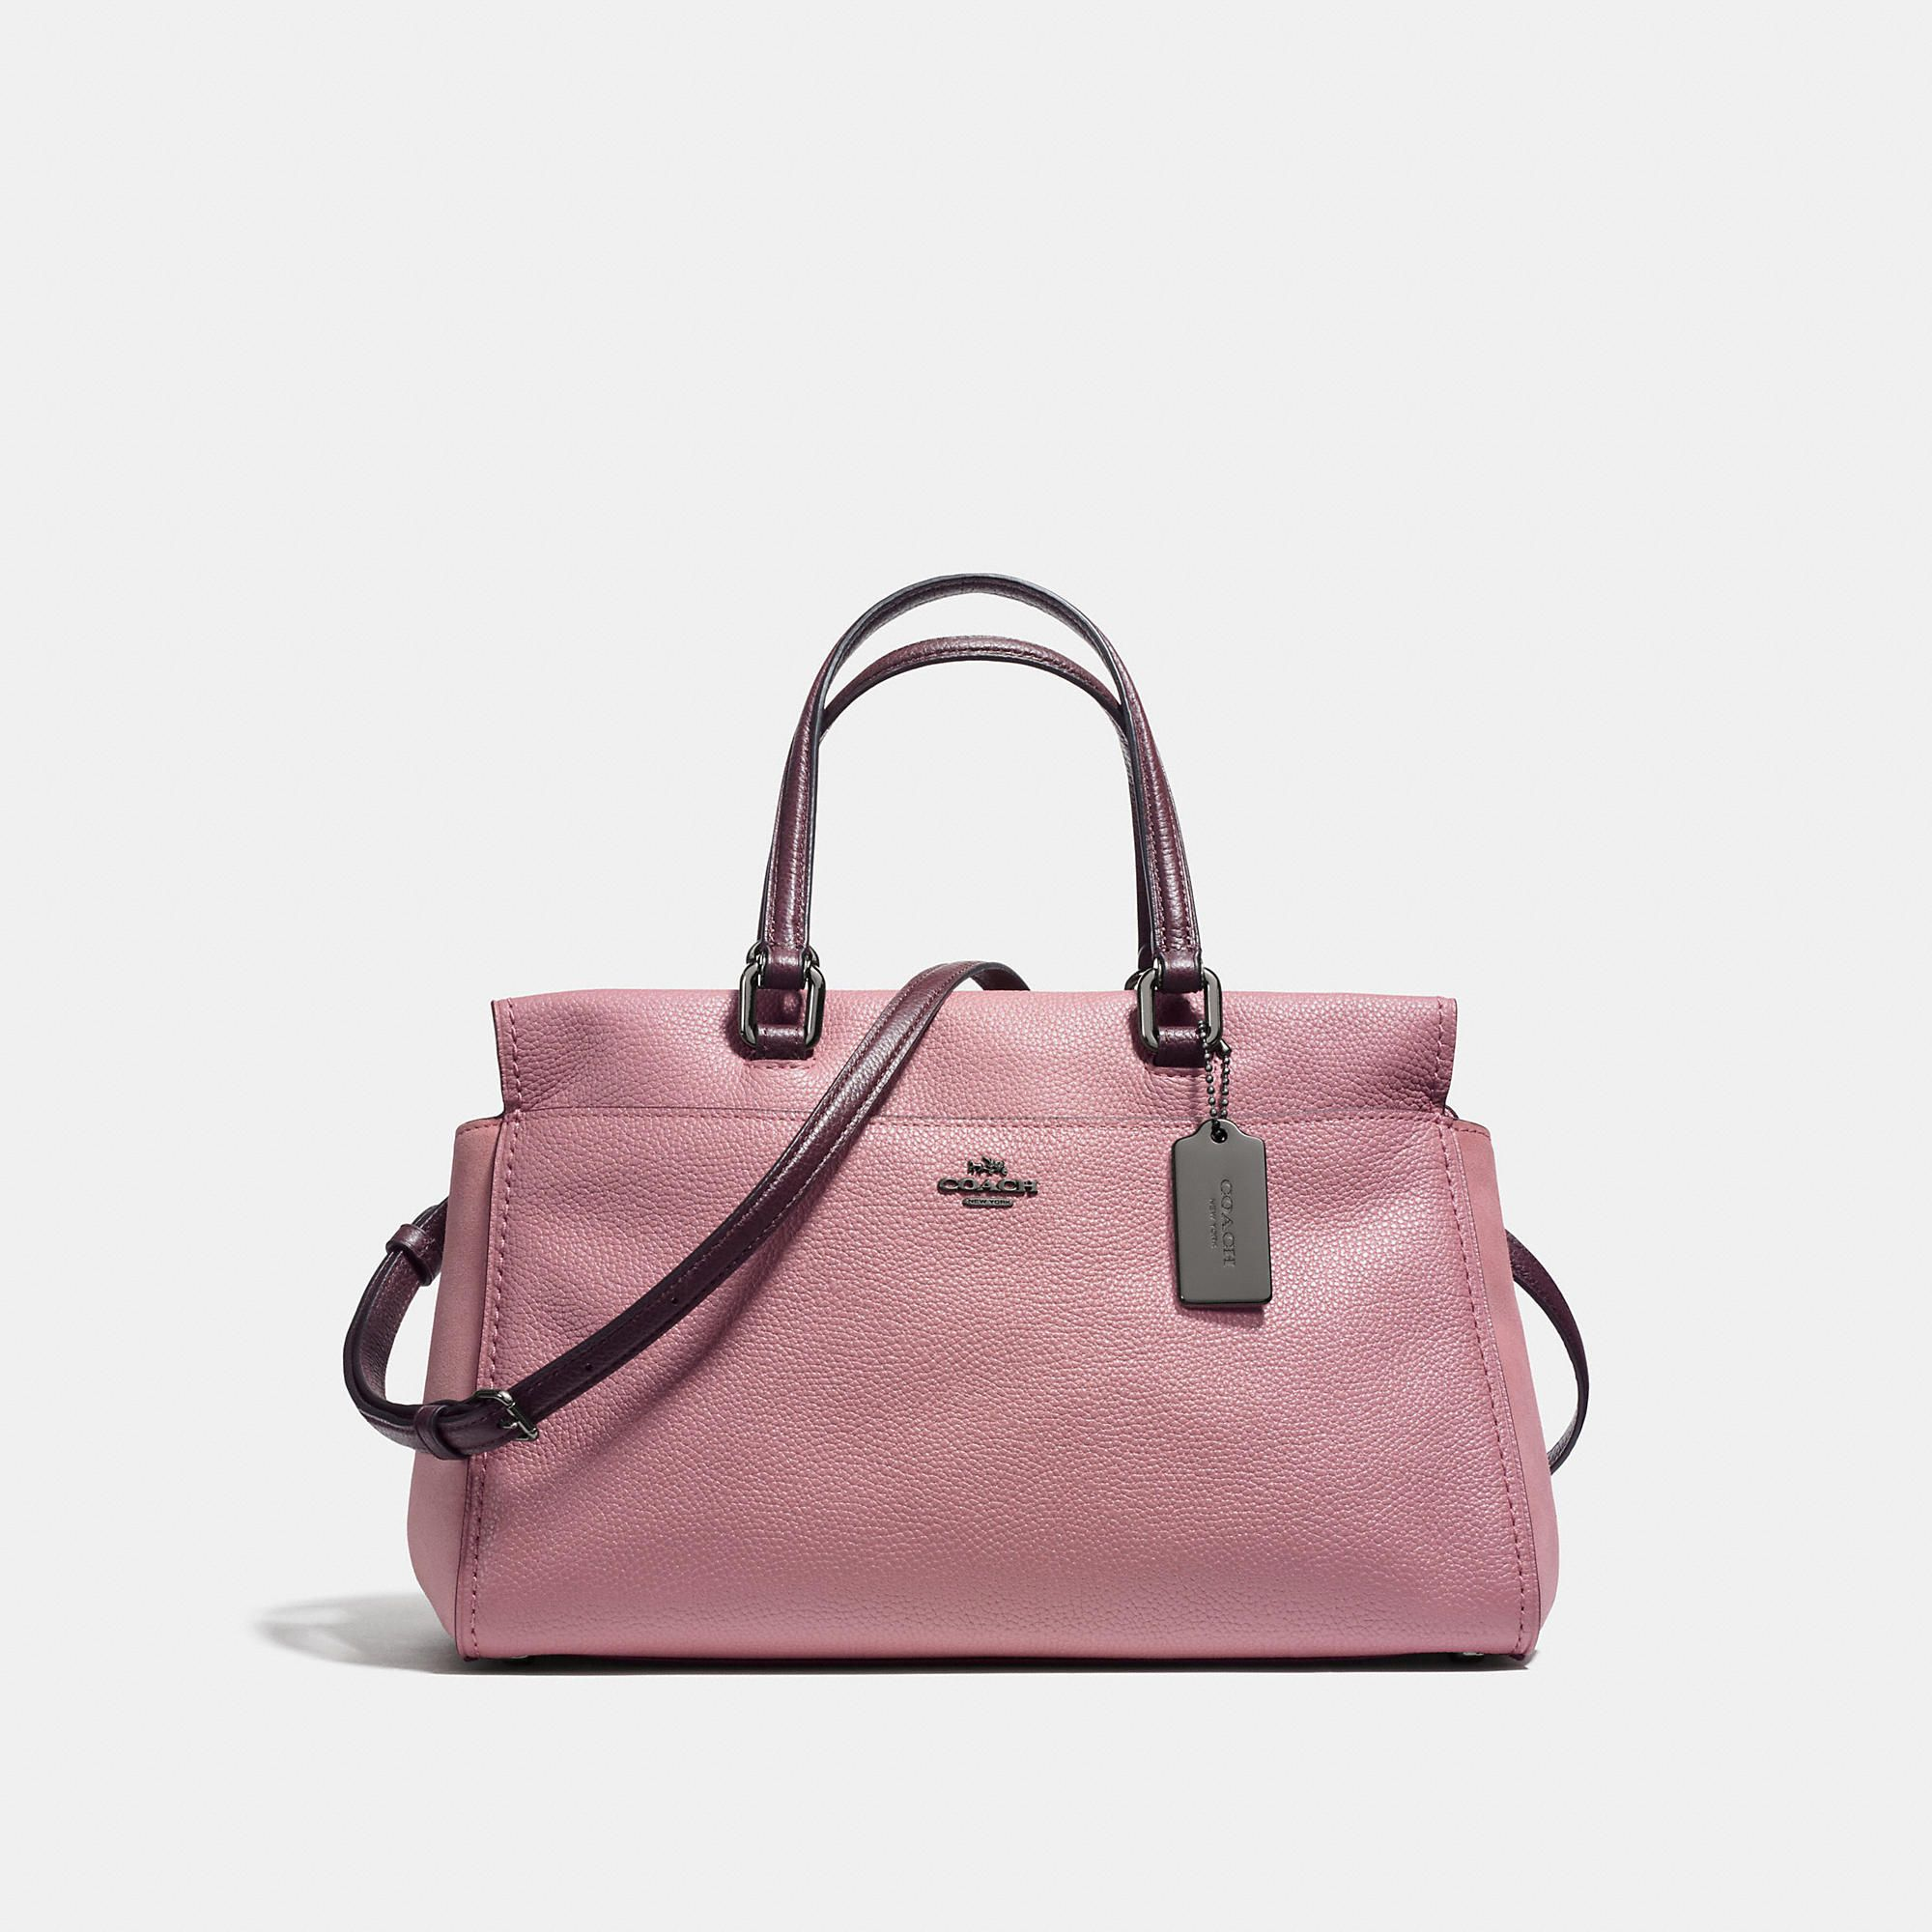 946a3c0bec Fulton Satchel In Colorblock in 2019 | Products | Bags, Bag ...